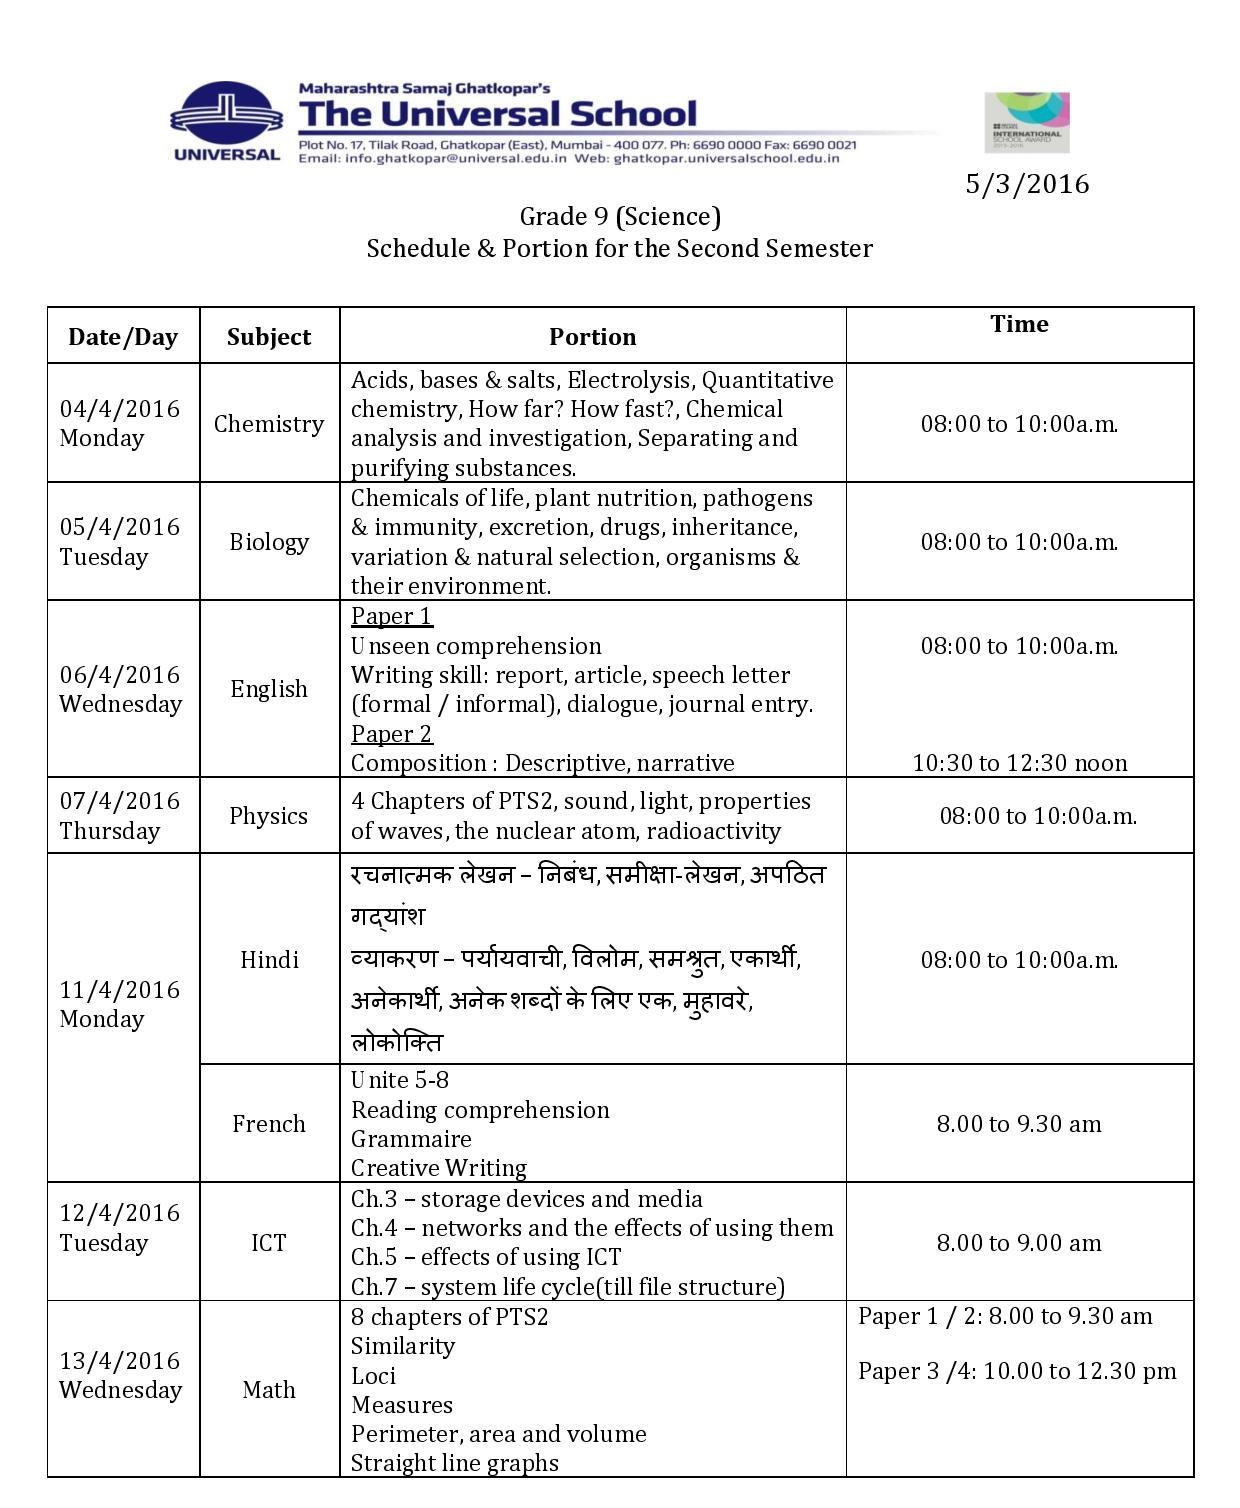 Grade 9 Science – Schedule & Portion for Second Semester Exam